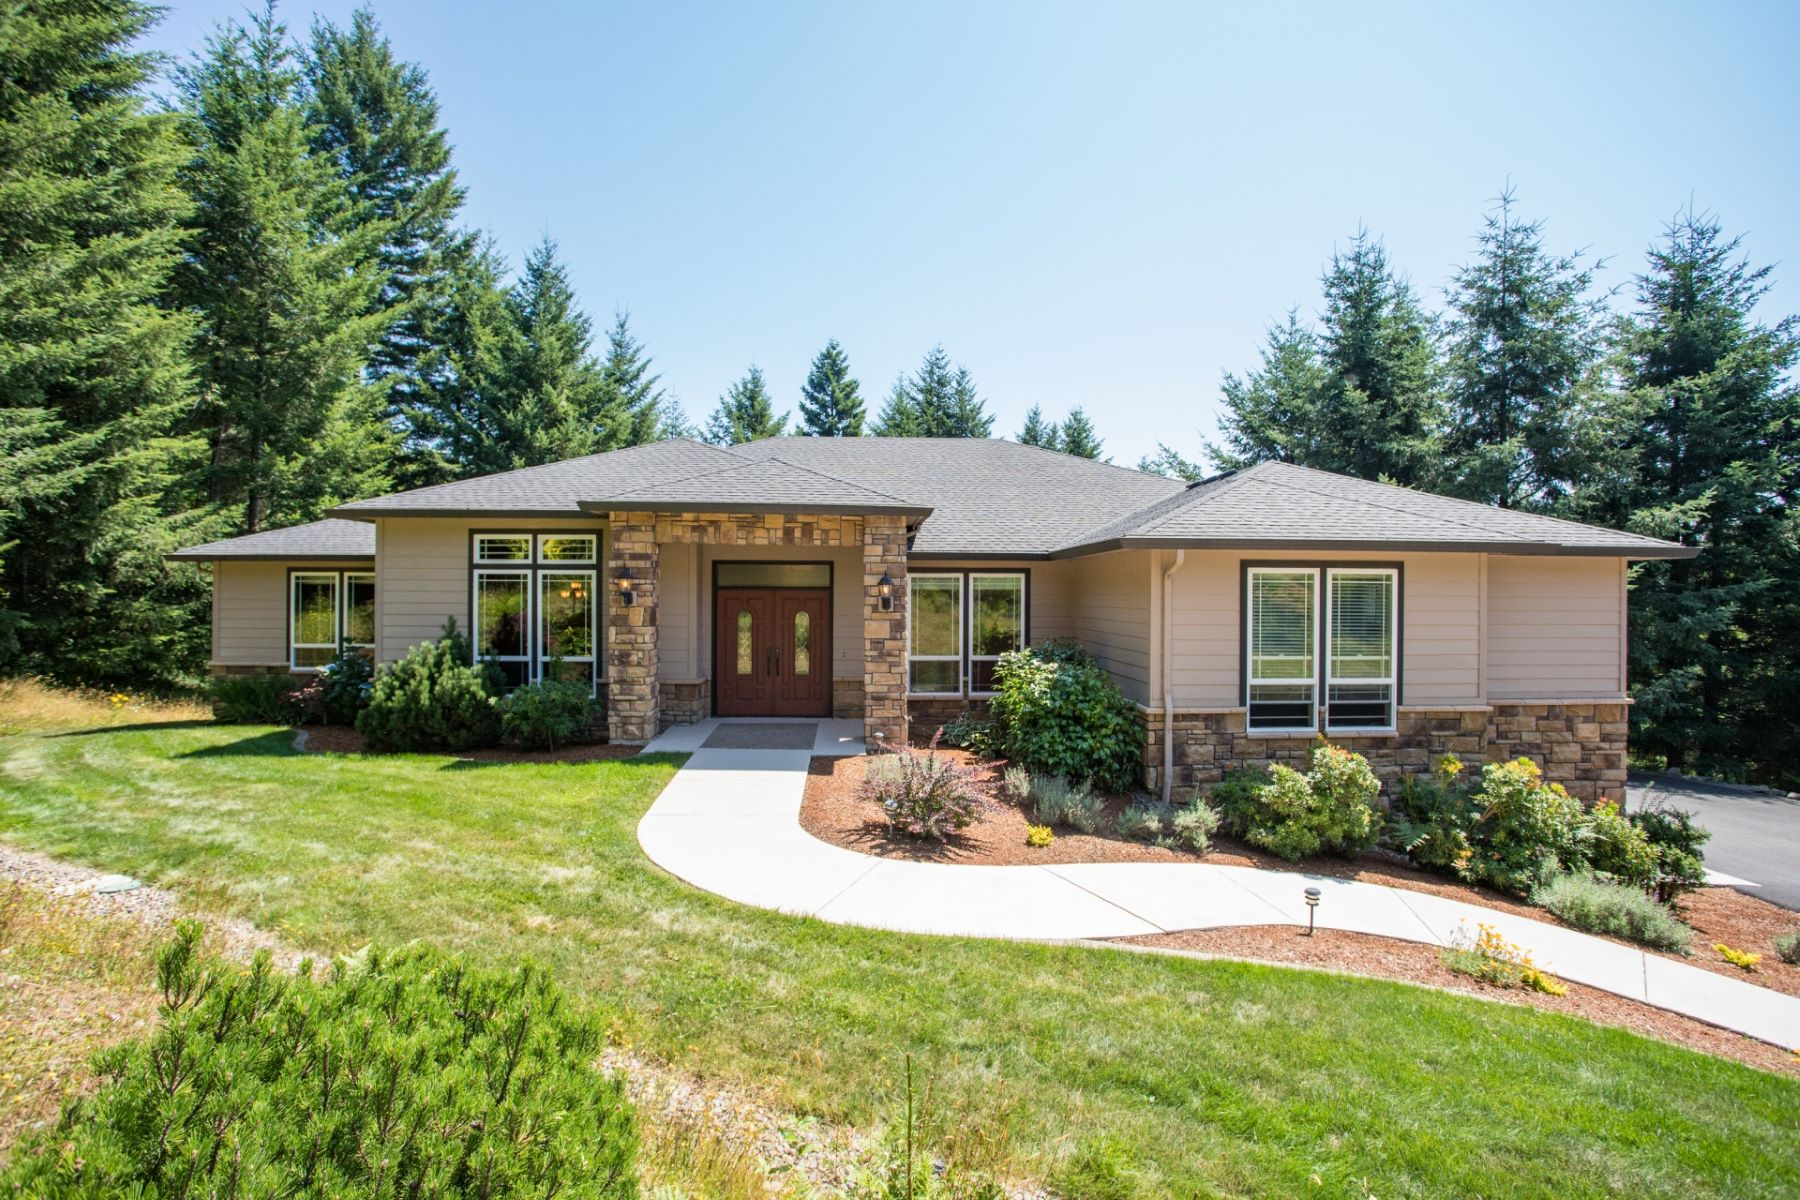 Single Family Homes for Sale at Private and Peaceful on 5+ Acres 29617 NE 64th Way Camas, Washington 98607 United States